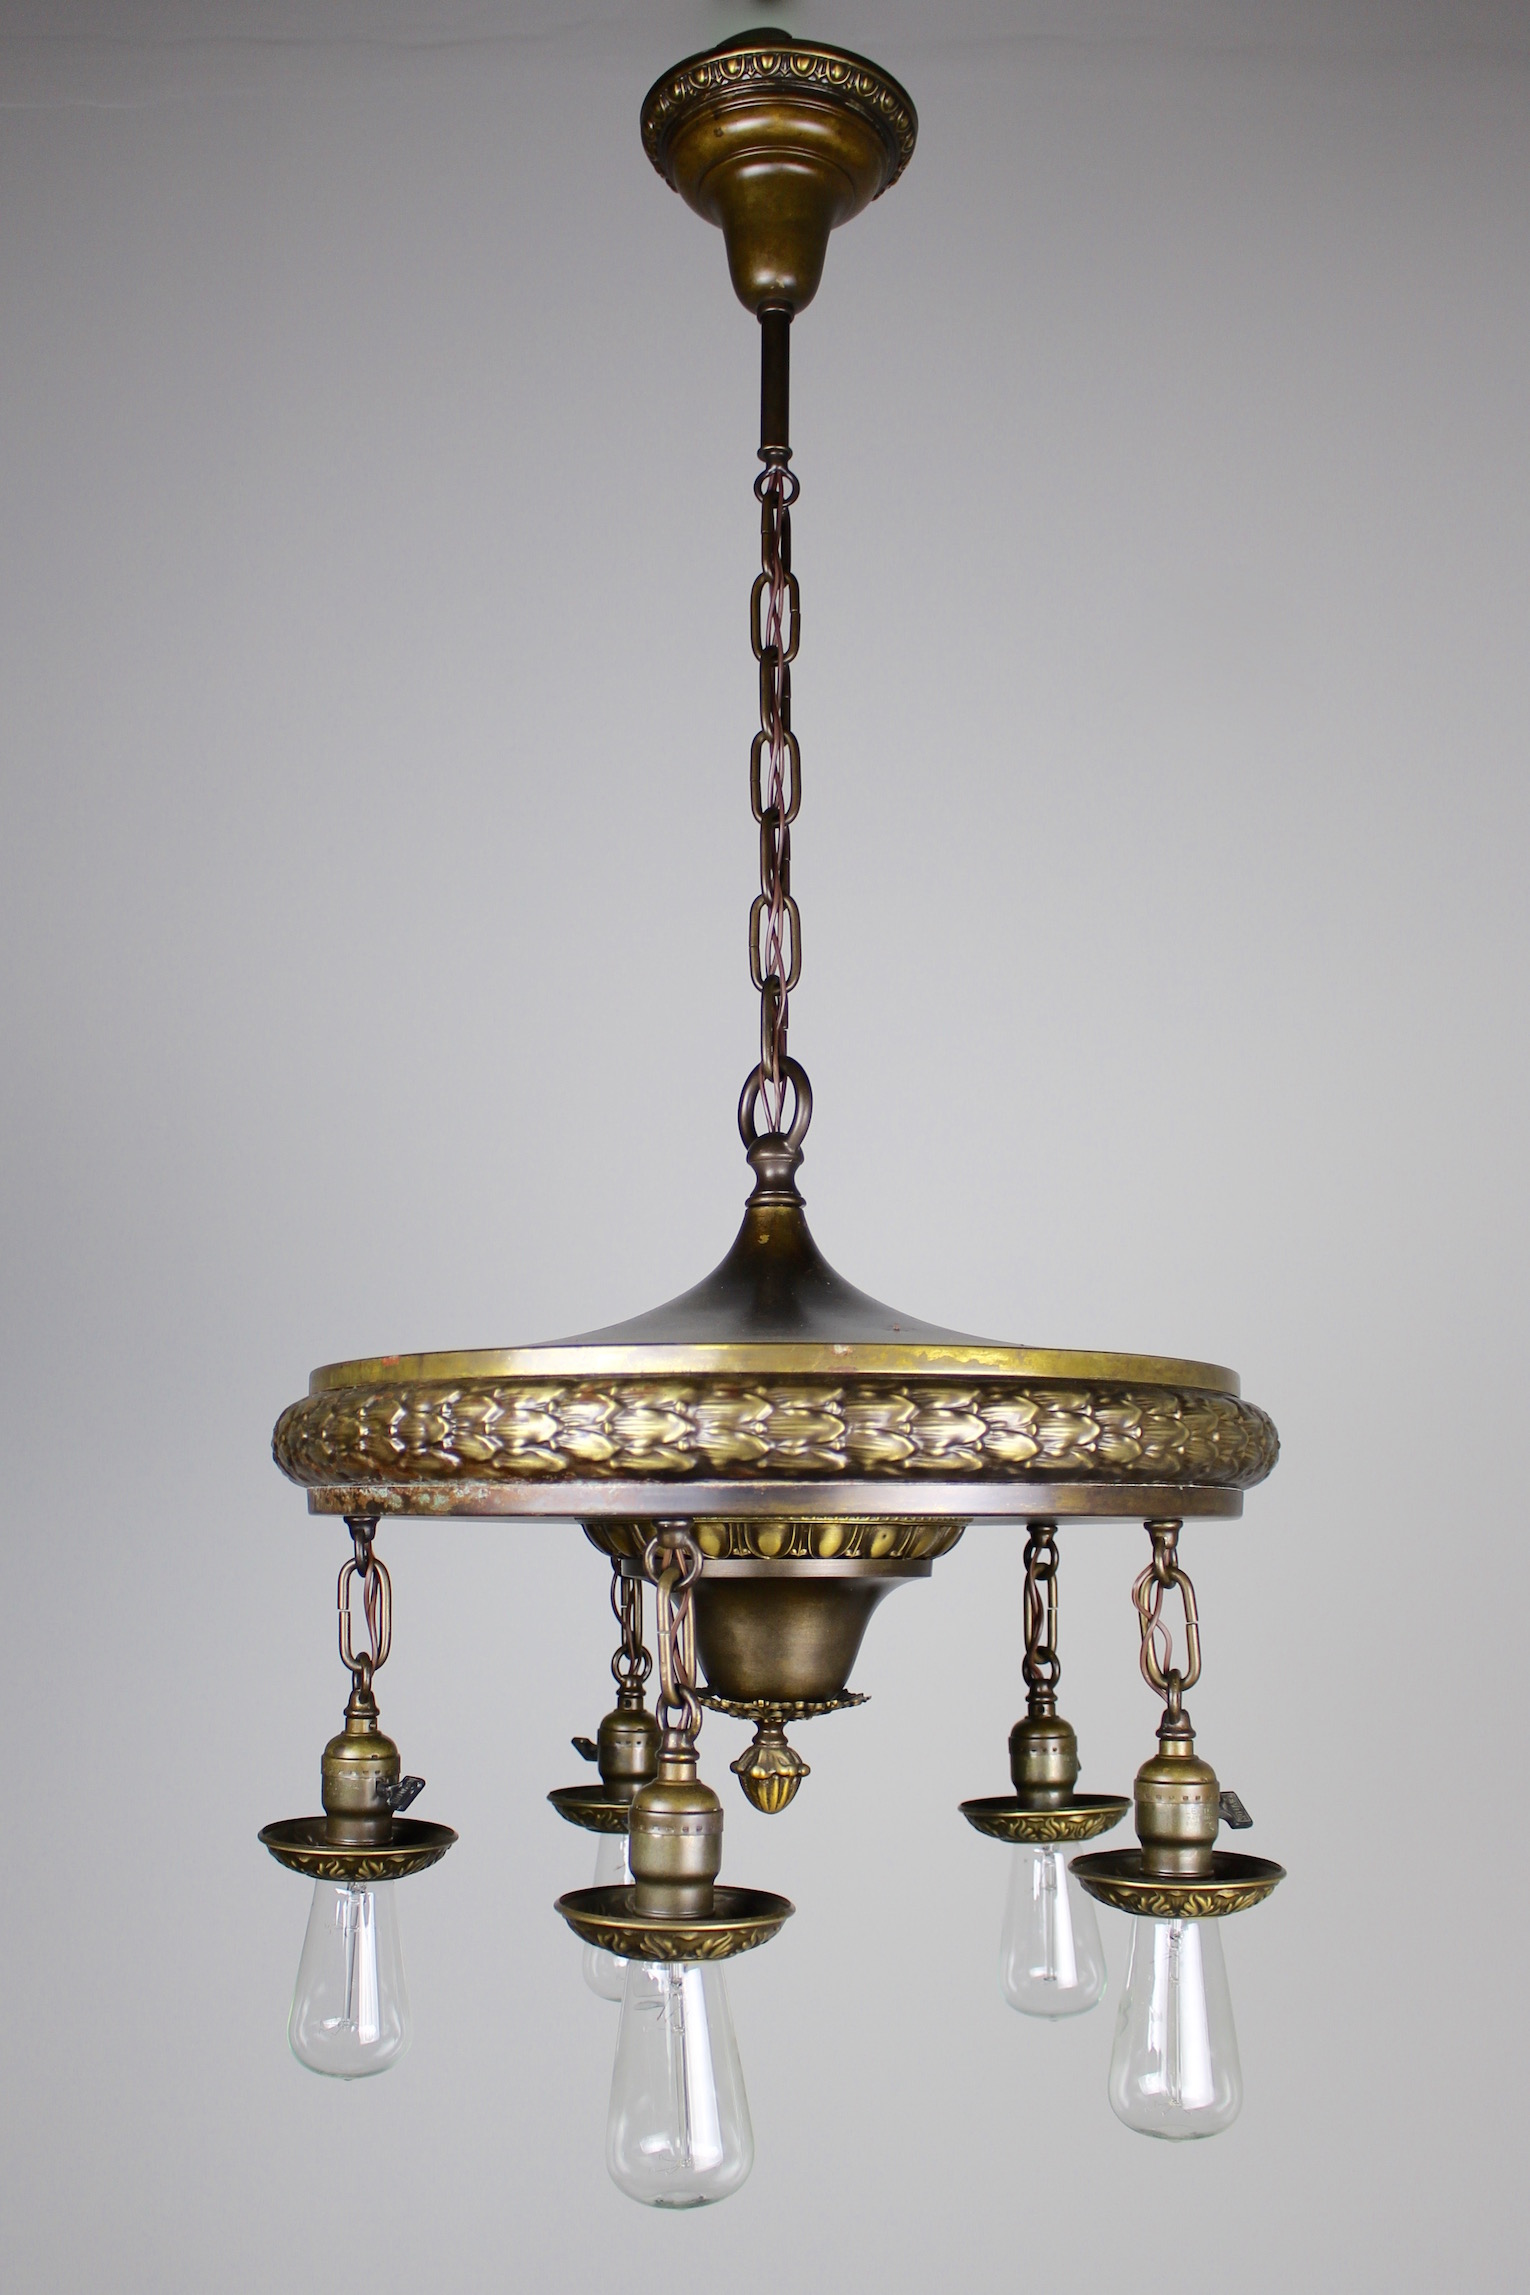 1920s Five-Light Neoclassical Revival Dining Room Fixture